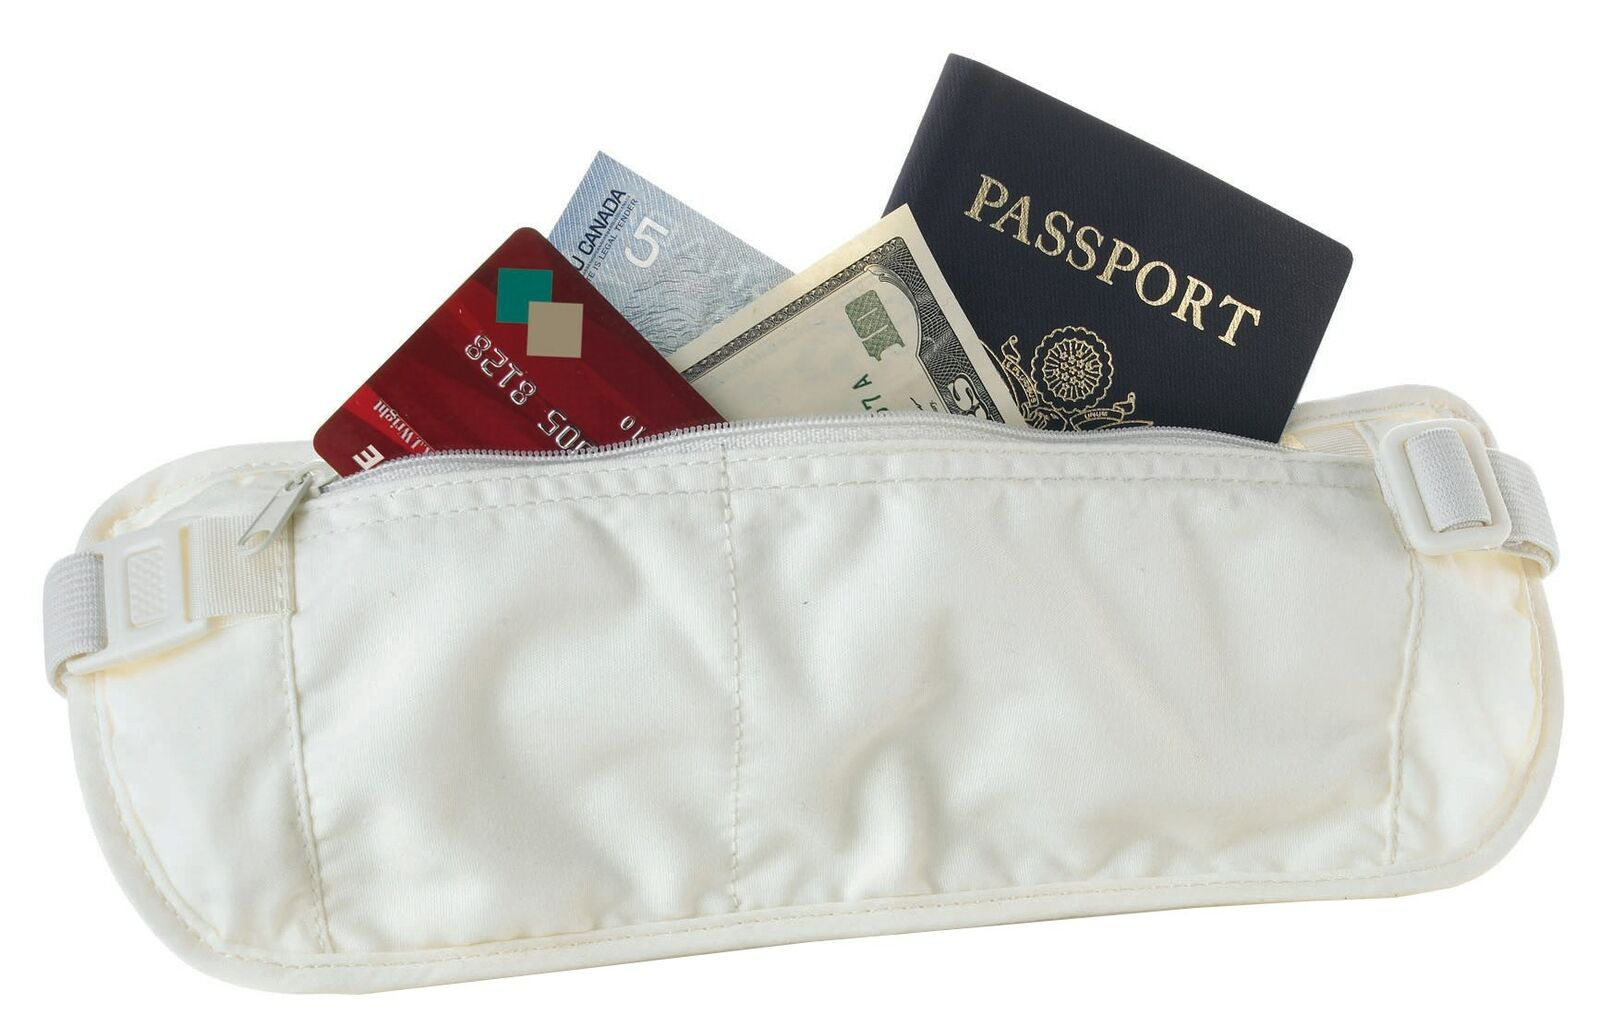 Travel Smart by Conair P3100 Waist Security Pouch